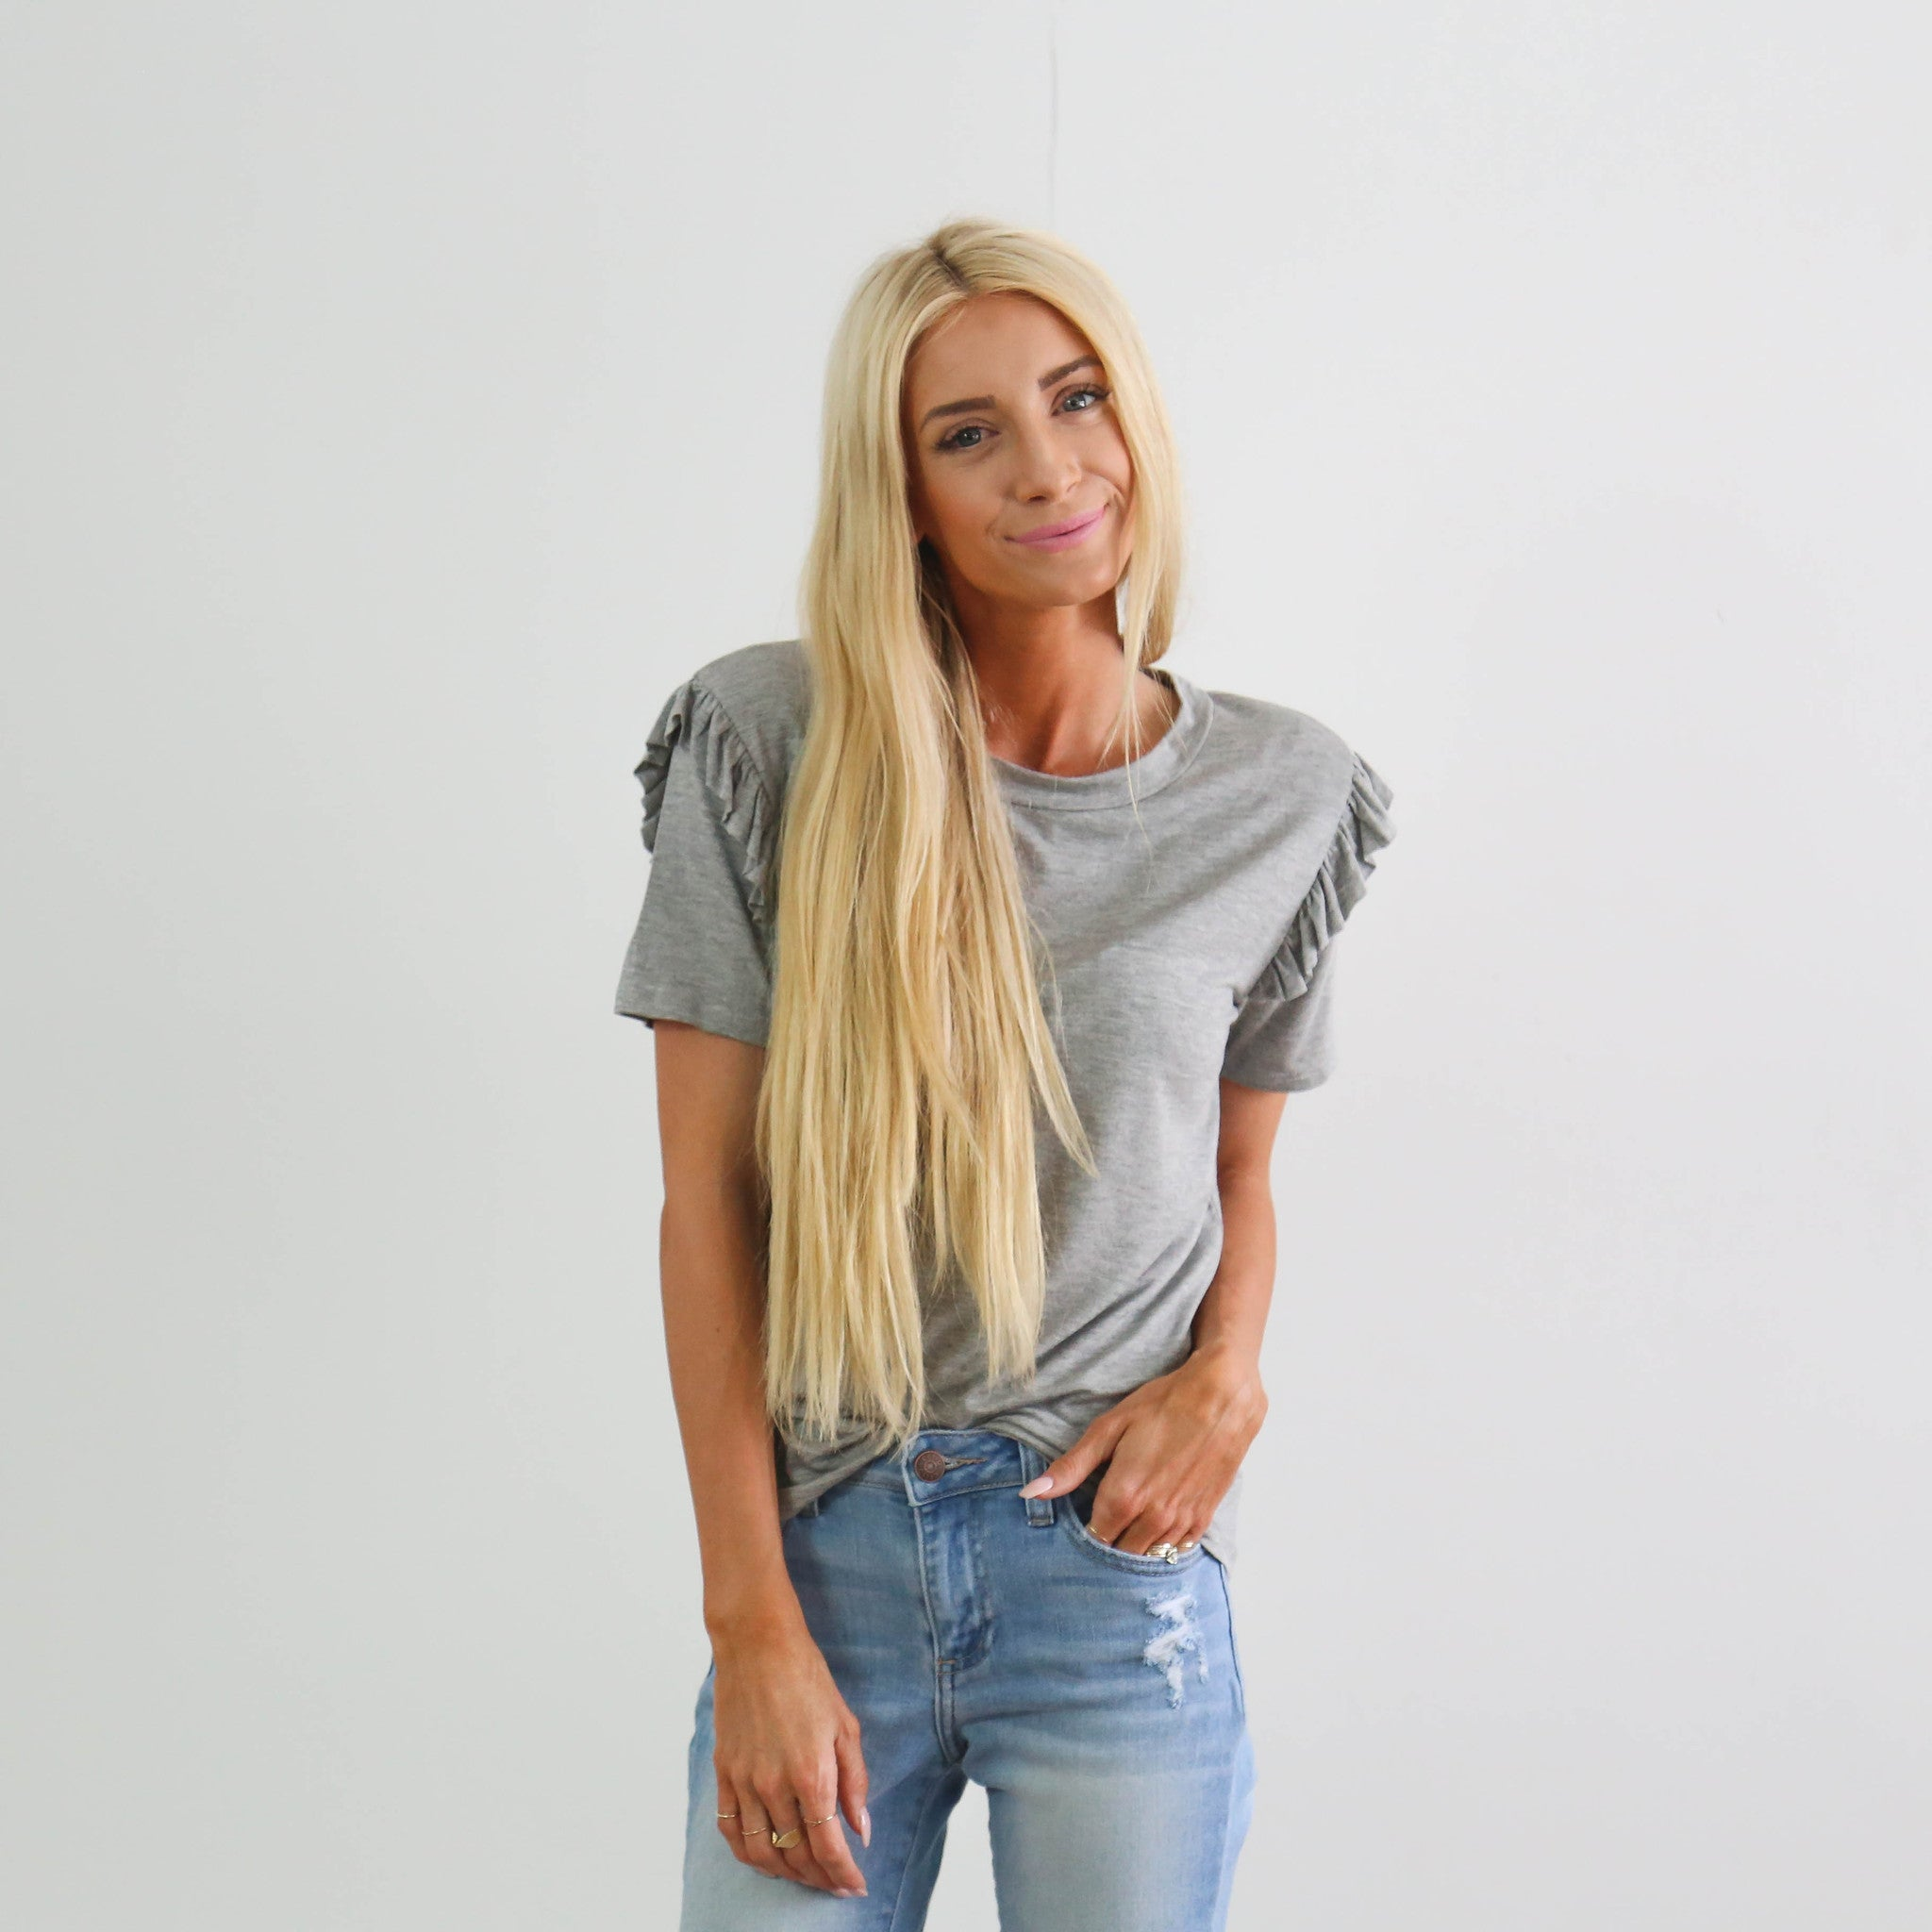 S & Co. Tava Ruffle Top